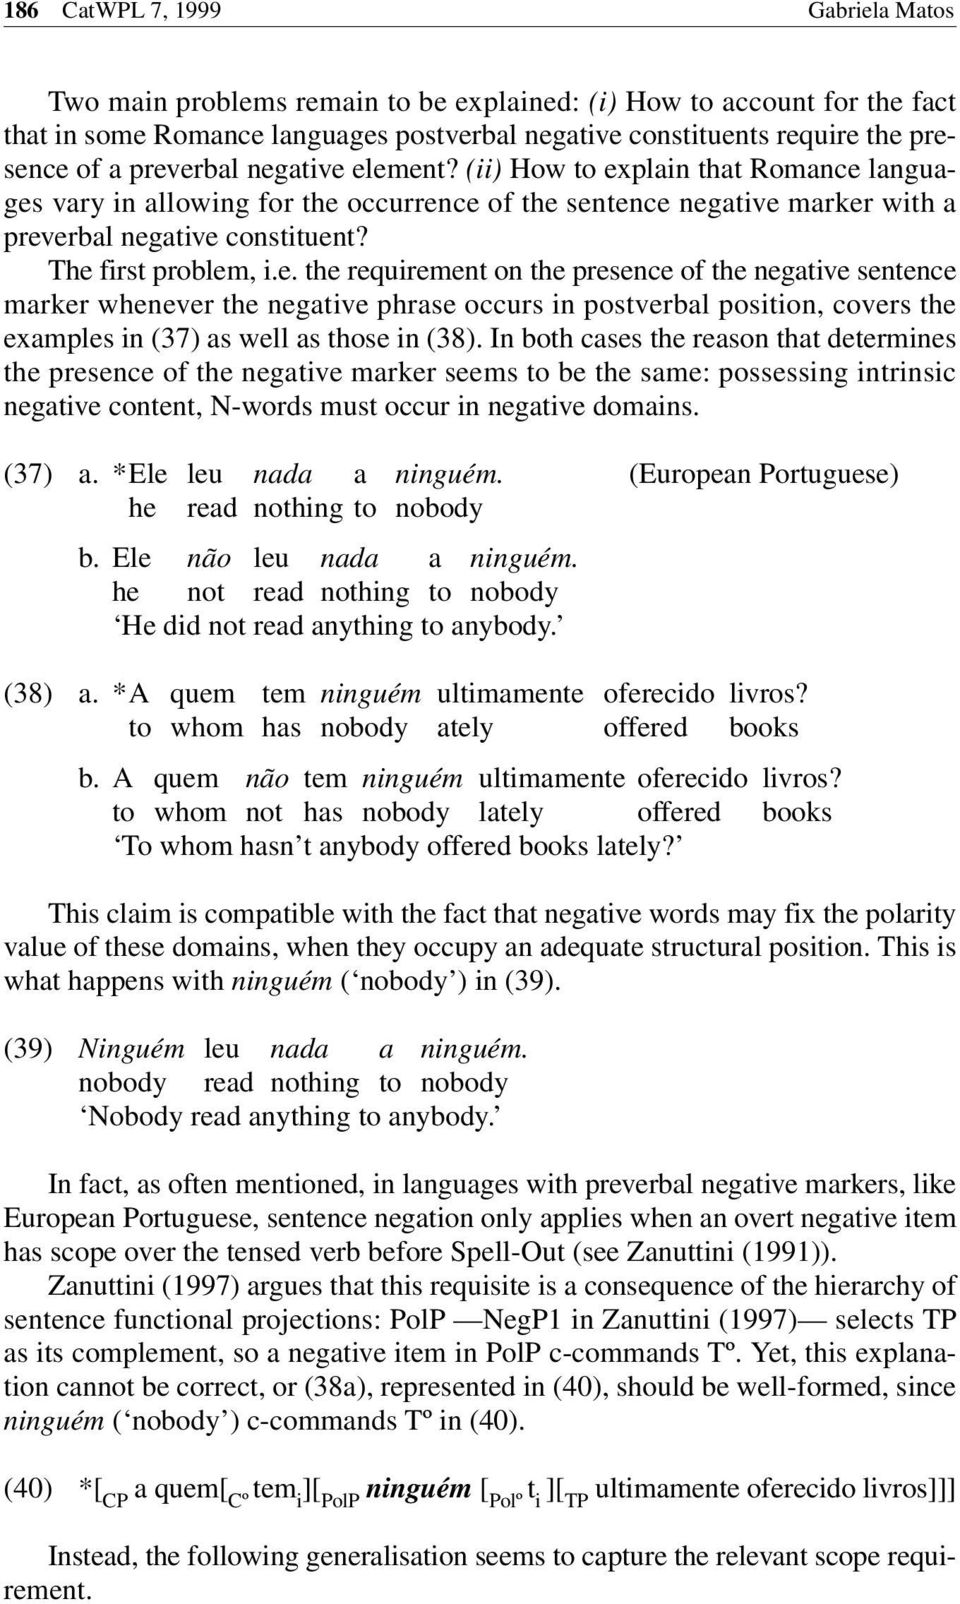 e. the requirement on the presence of the negative sentence marker whenever the negative phrase occurs in postverbal position, covers the examples in (37) as well as those in (38).